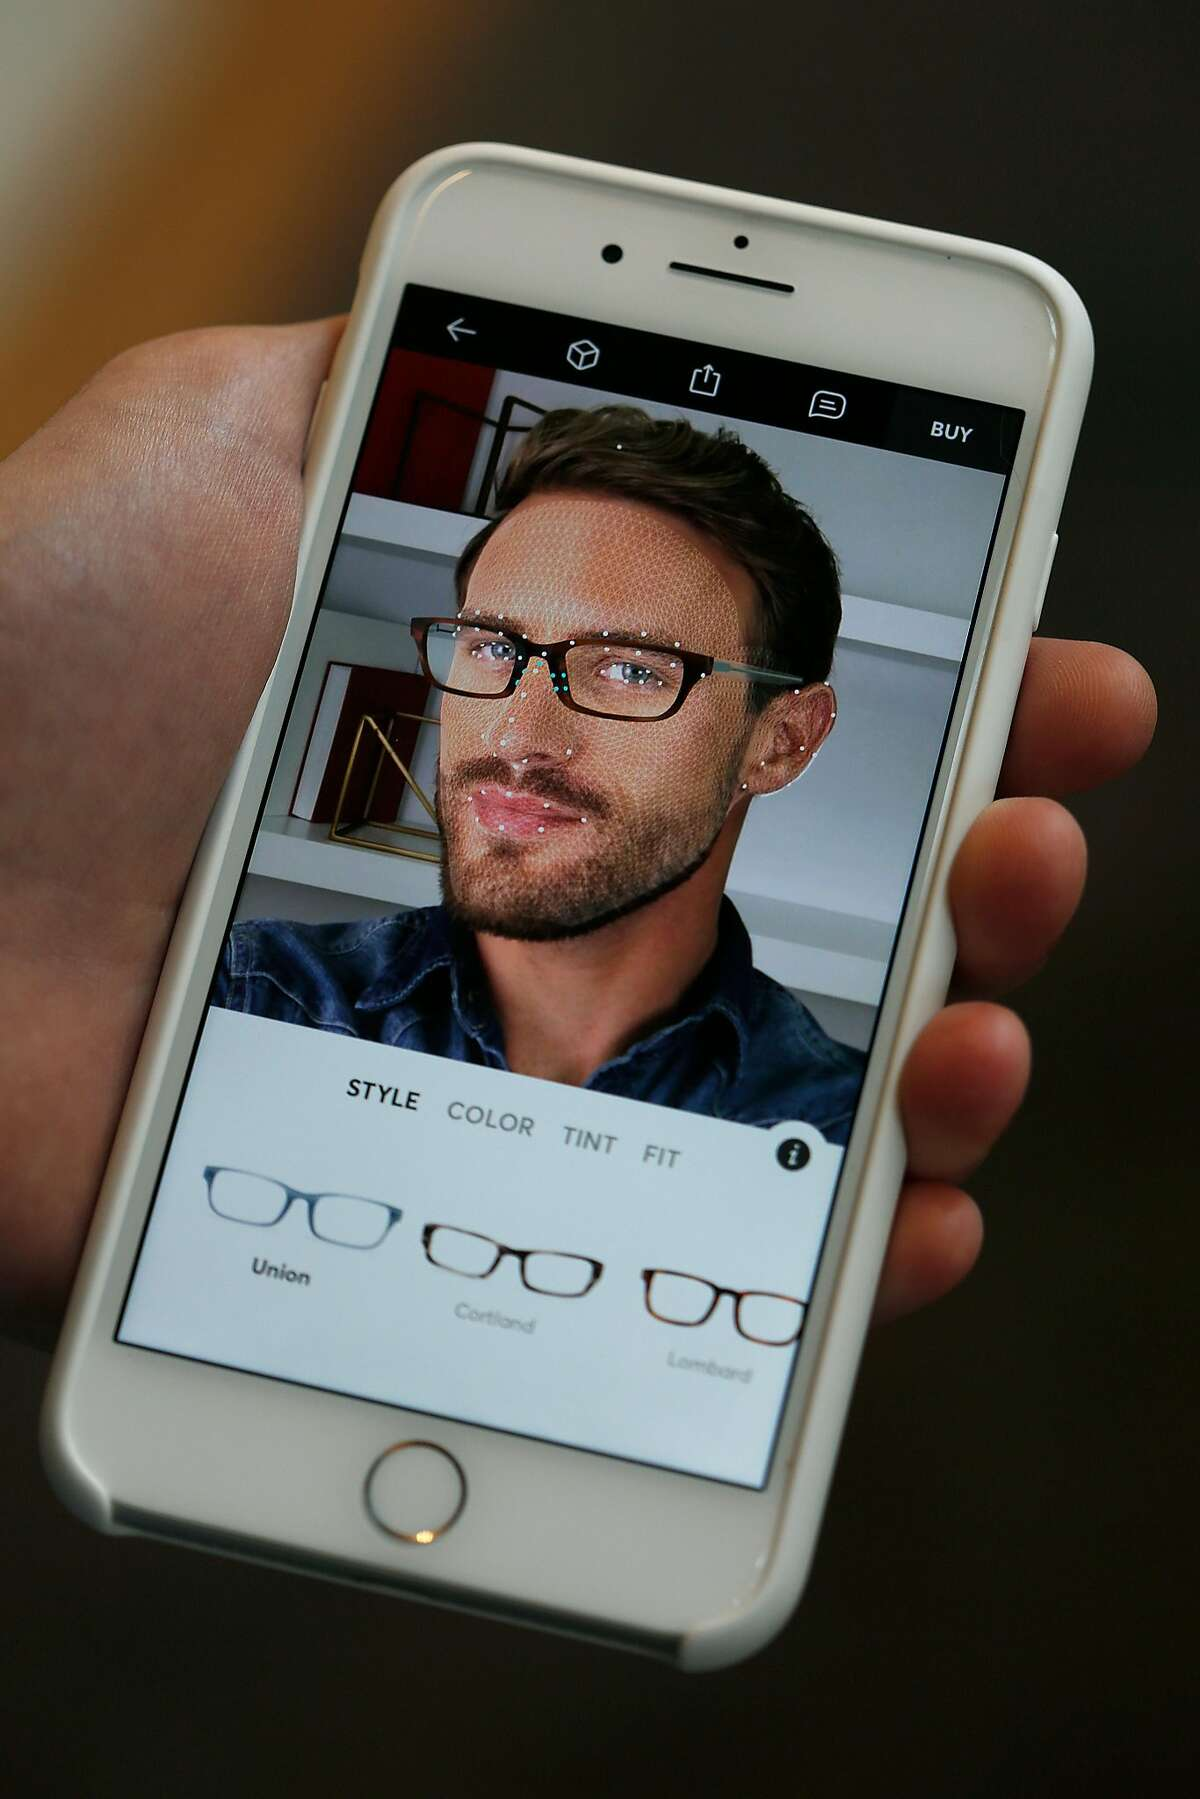 Topology, a new company that has developed a way to make eyewear custom fitted to the individual by using their app on Thursday, September 28, 2017, in San Francisco, Calif.